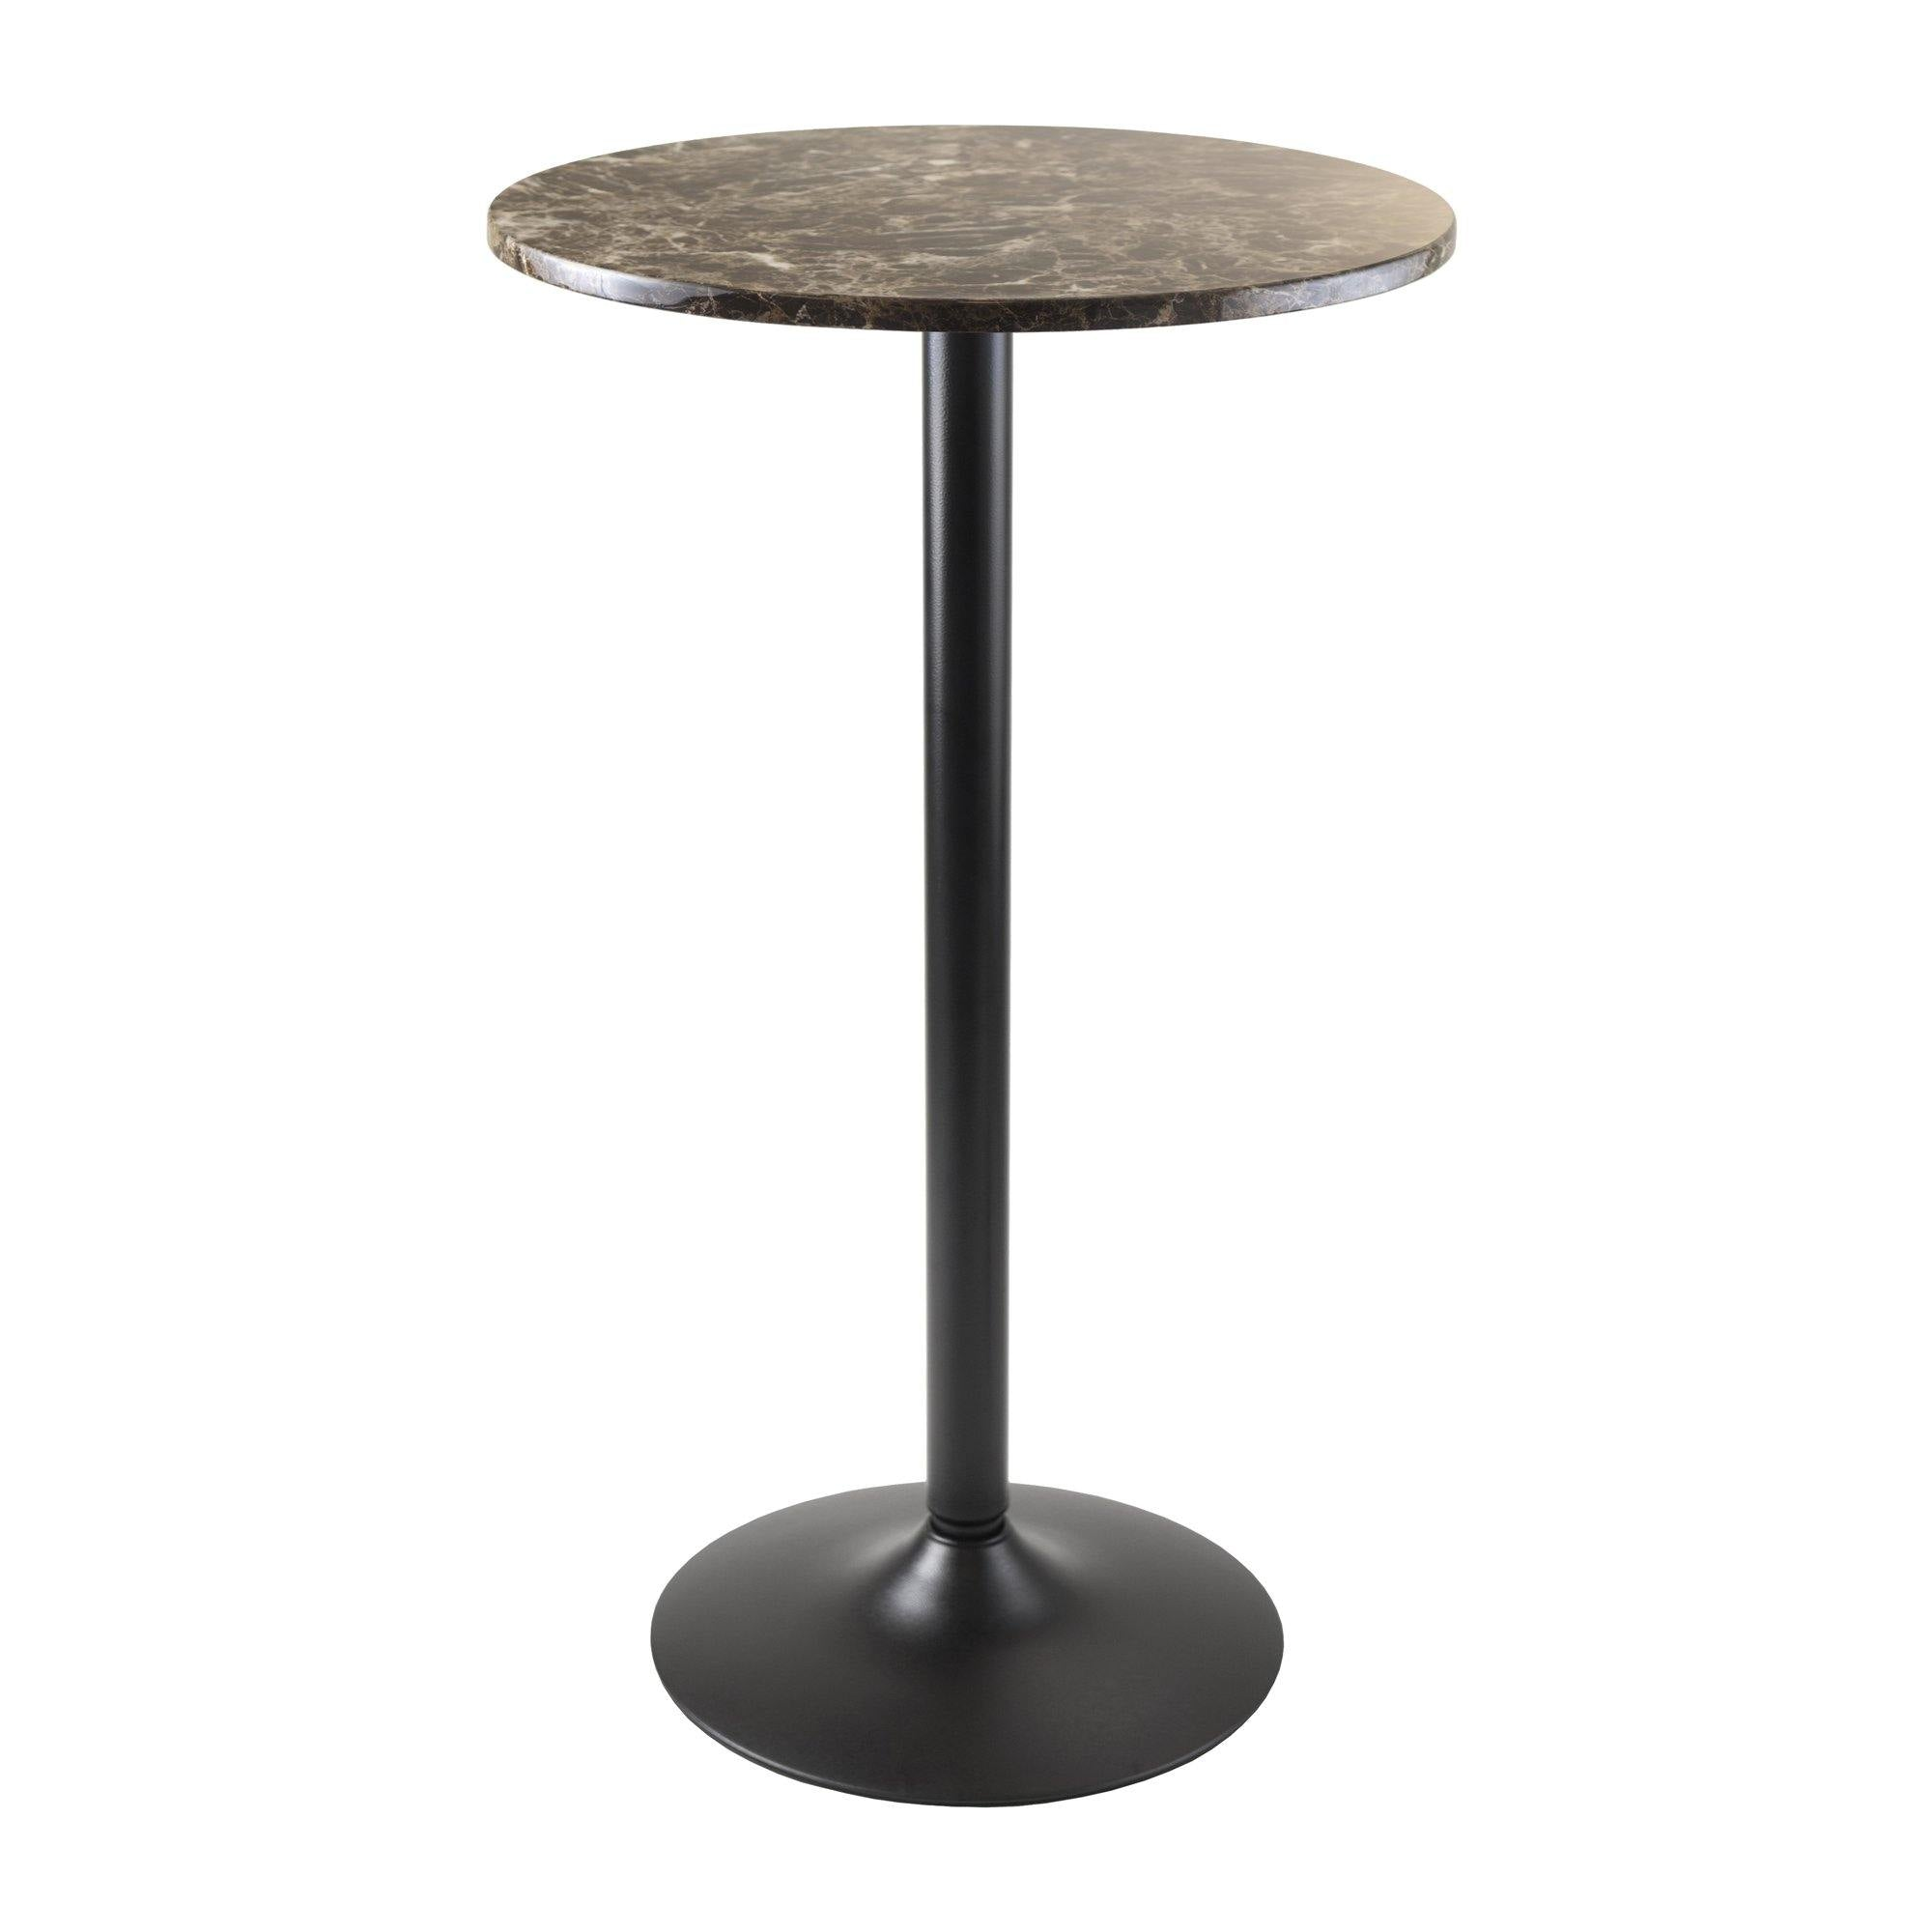 Cora Round Pub Table, Faux Marble Top, Black Base